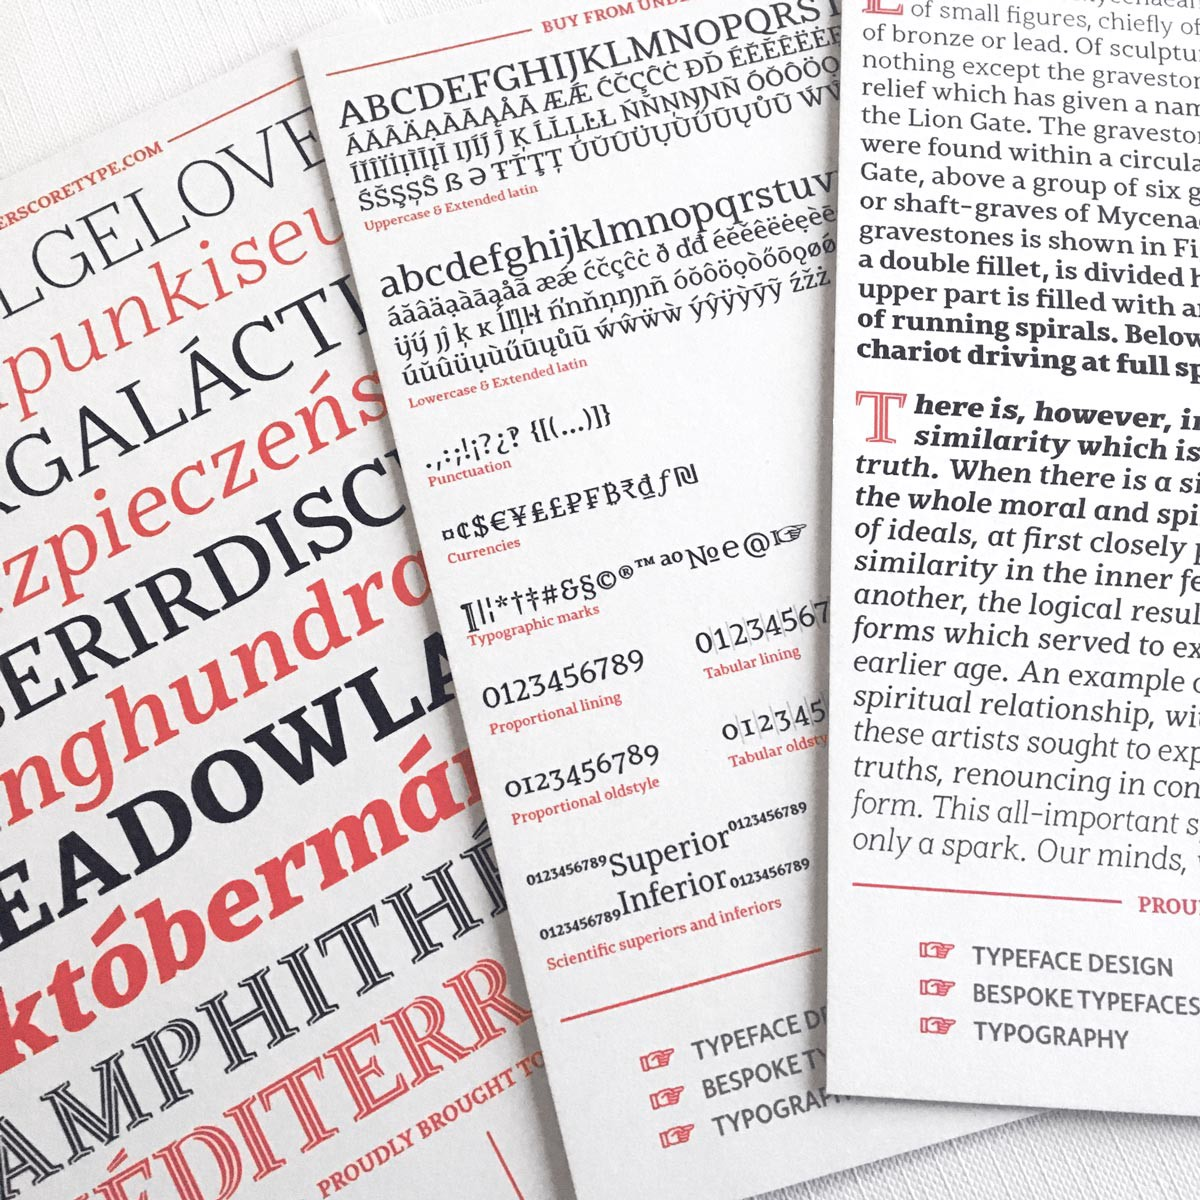 Jozef typeface family speciman cards